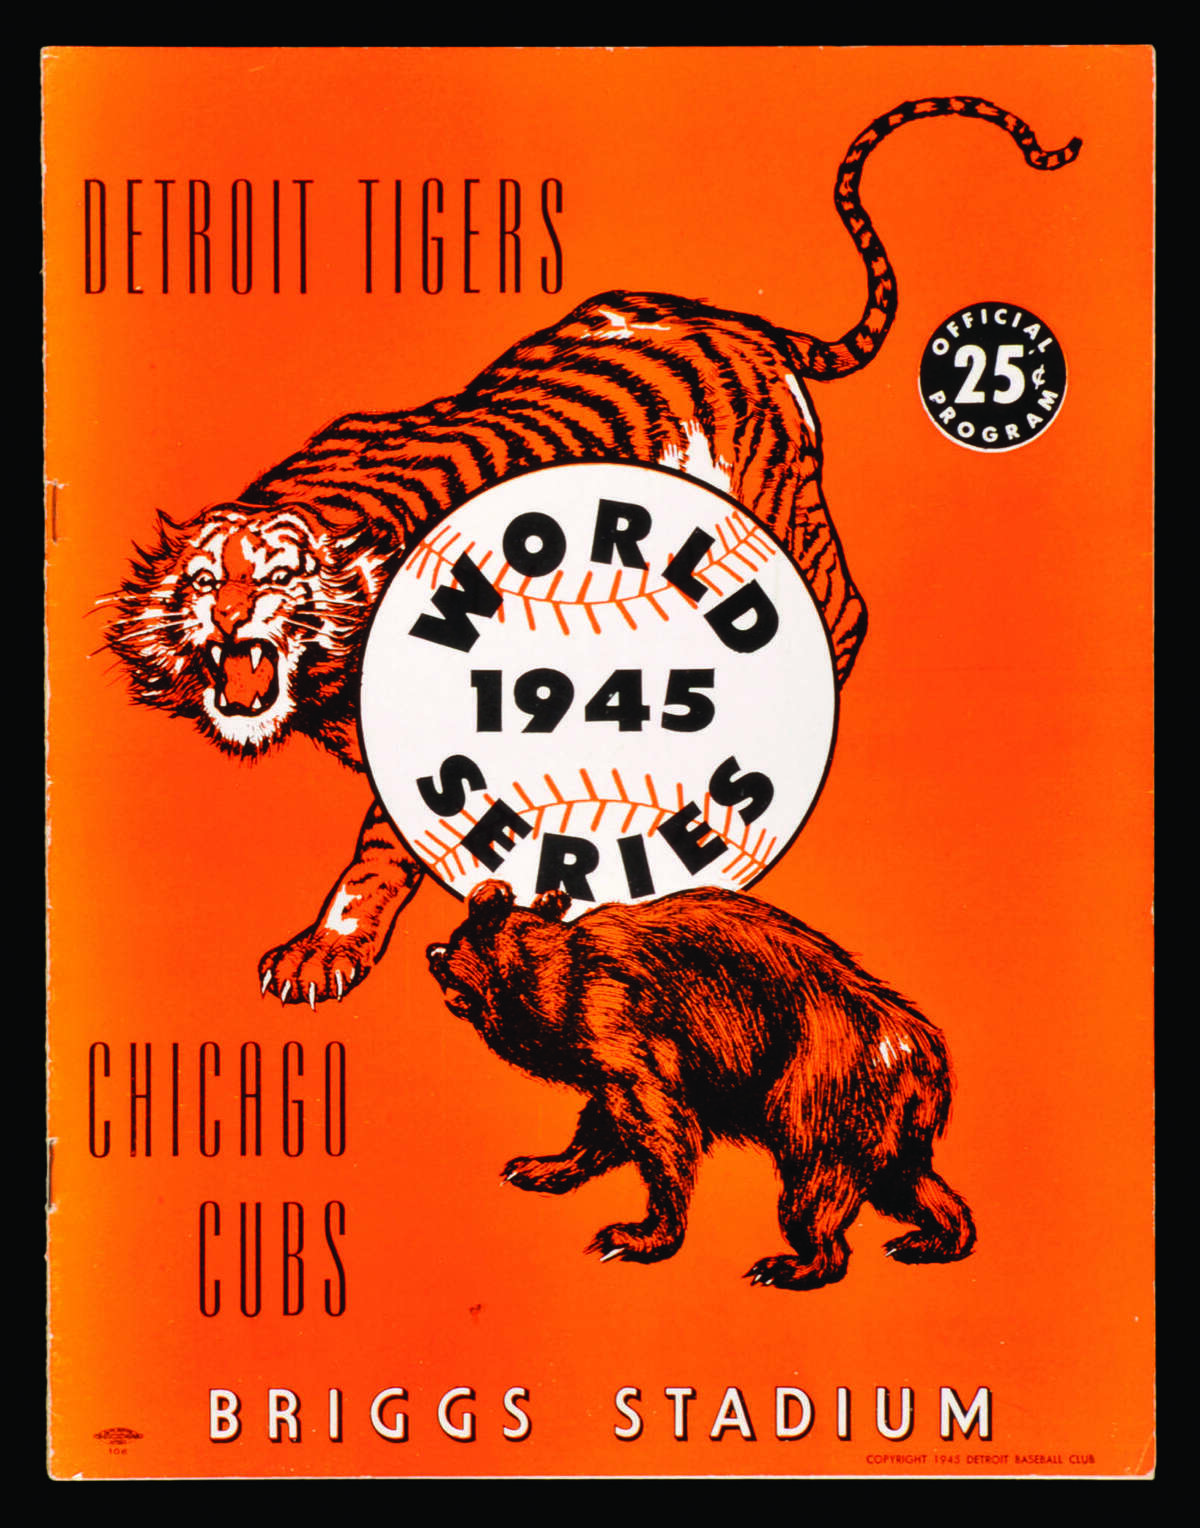 A look back at the last time the Chicago Cubs were in the World Series.